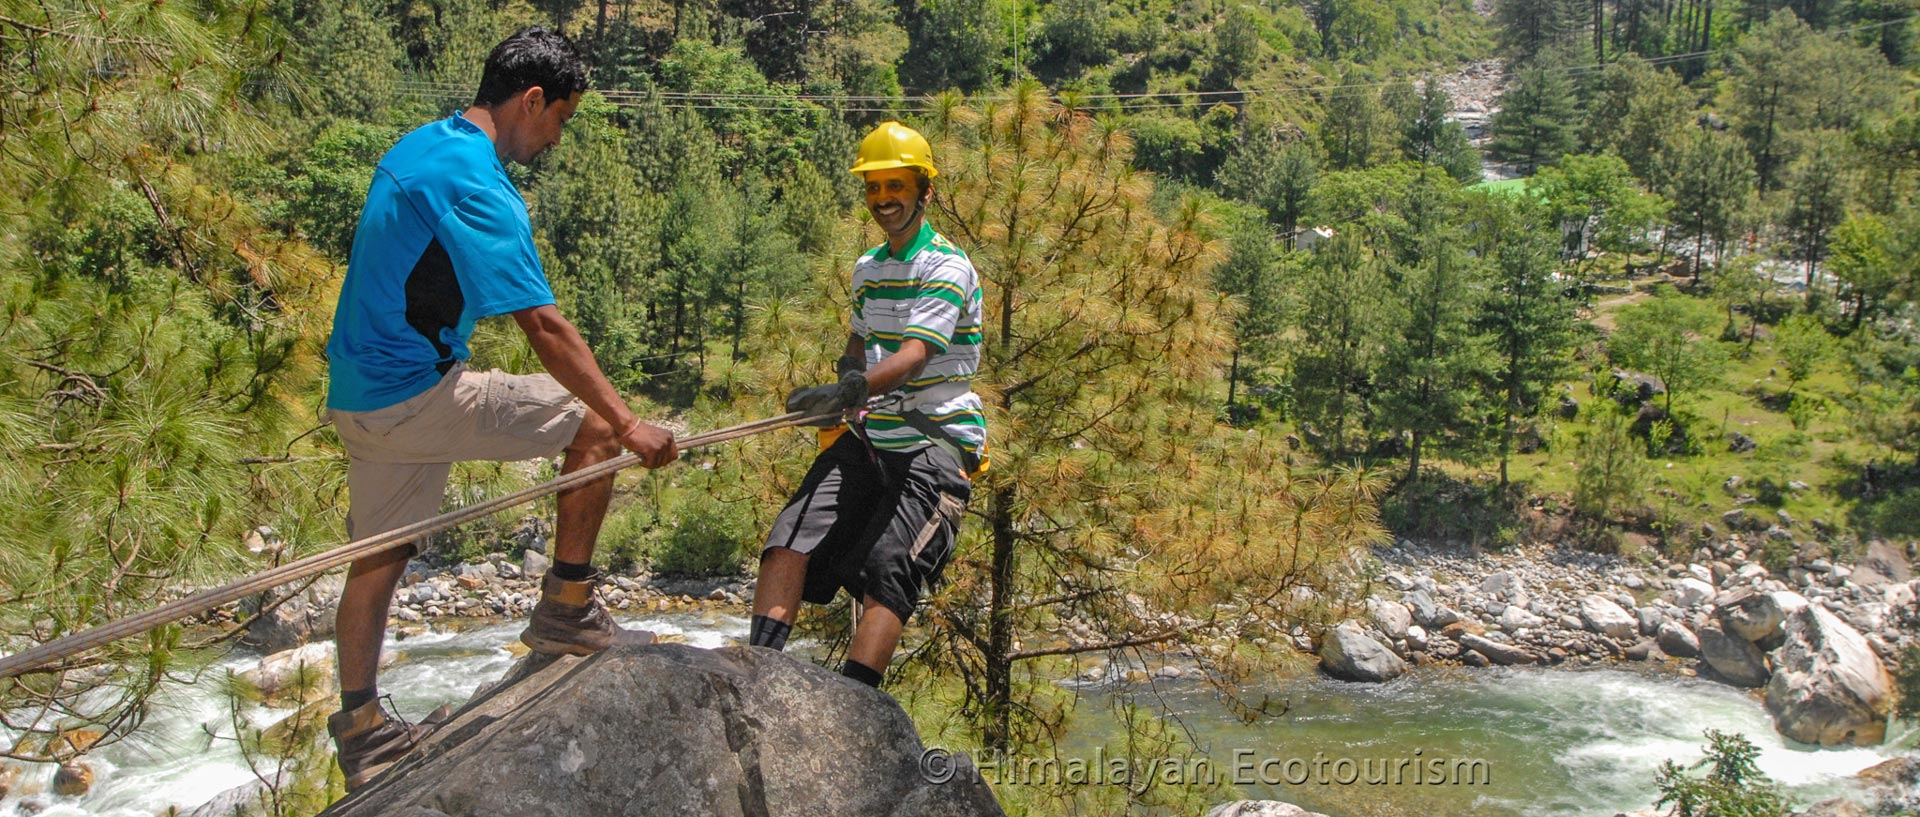 Adventure activities in the Great Himalayan National Park